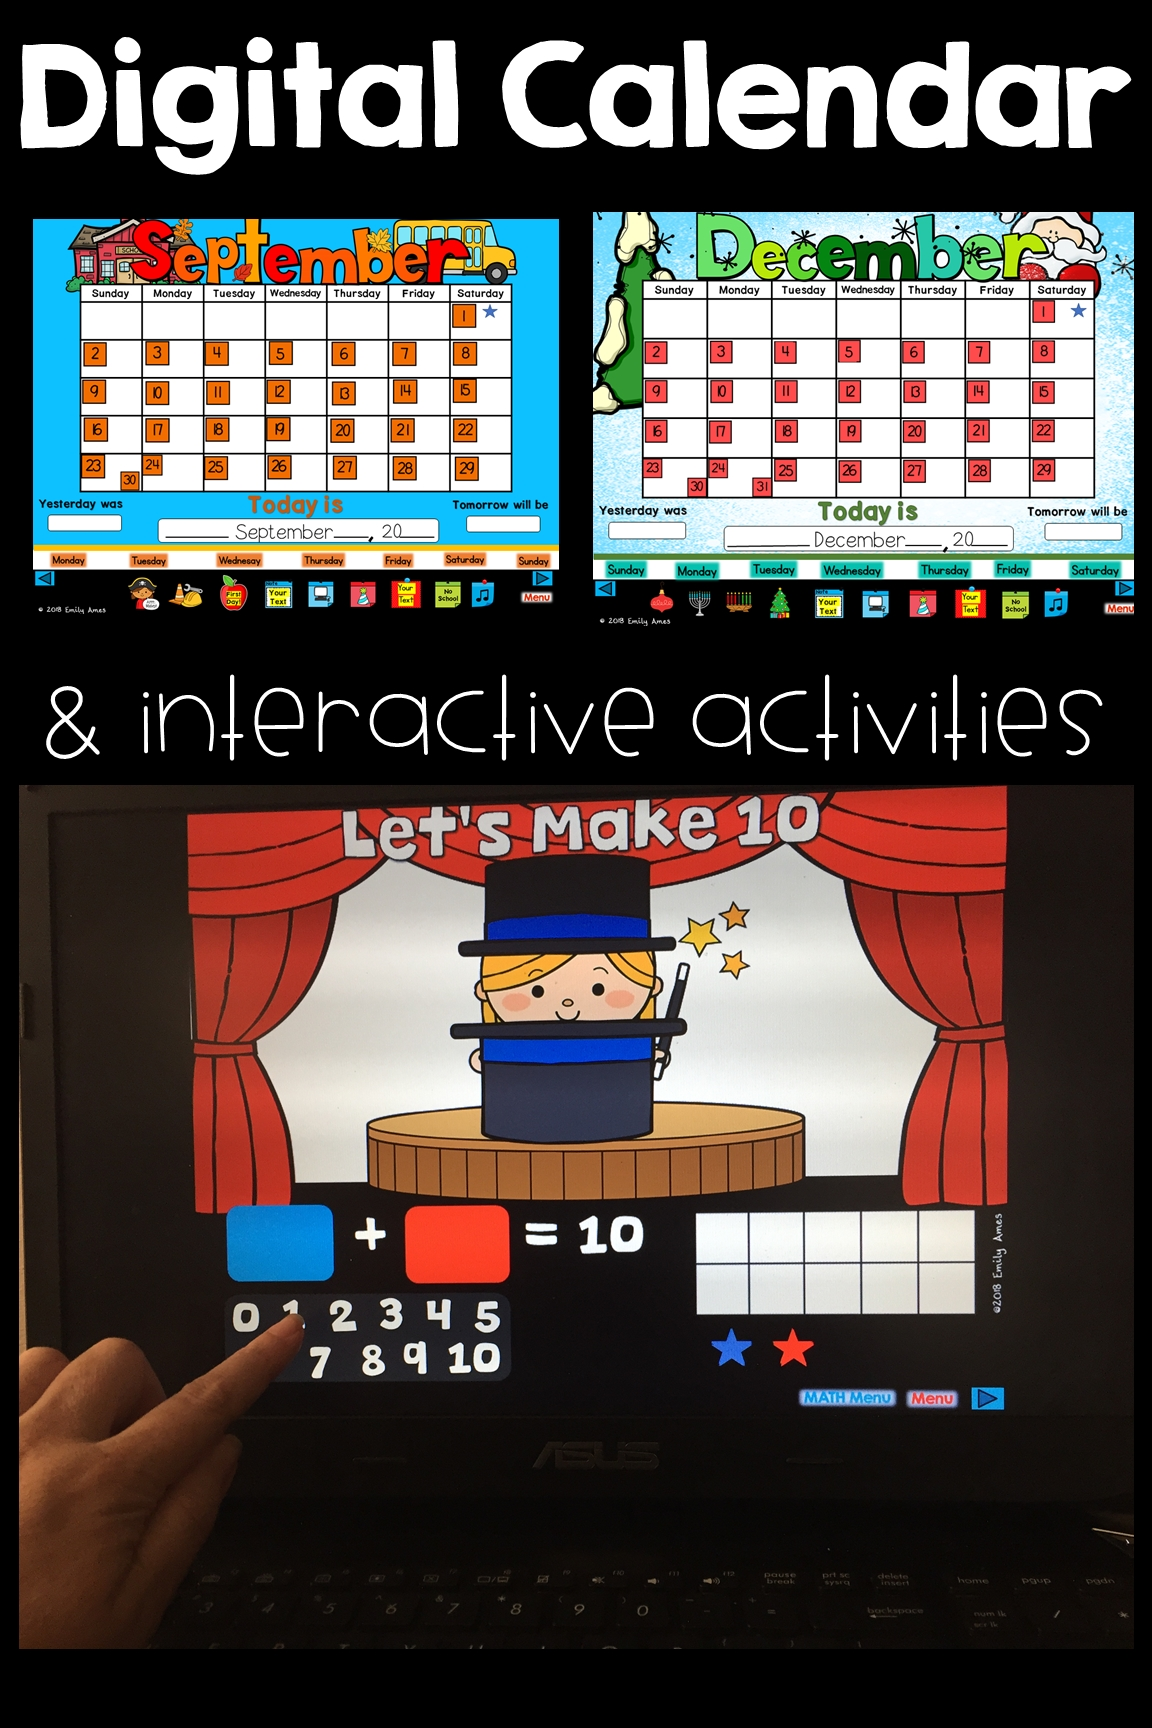 Digital Smart Board Calendar With Activities For Weather, Days, Date, How Many Days In School